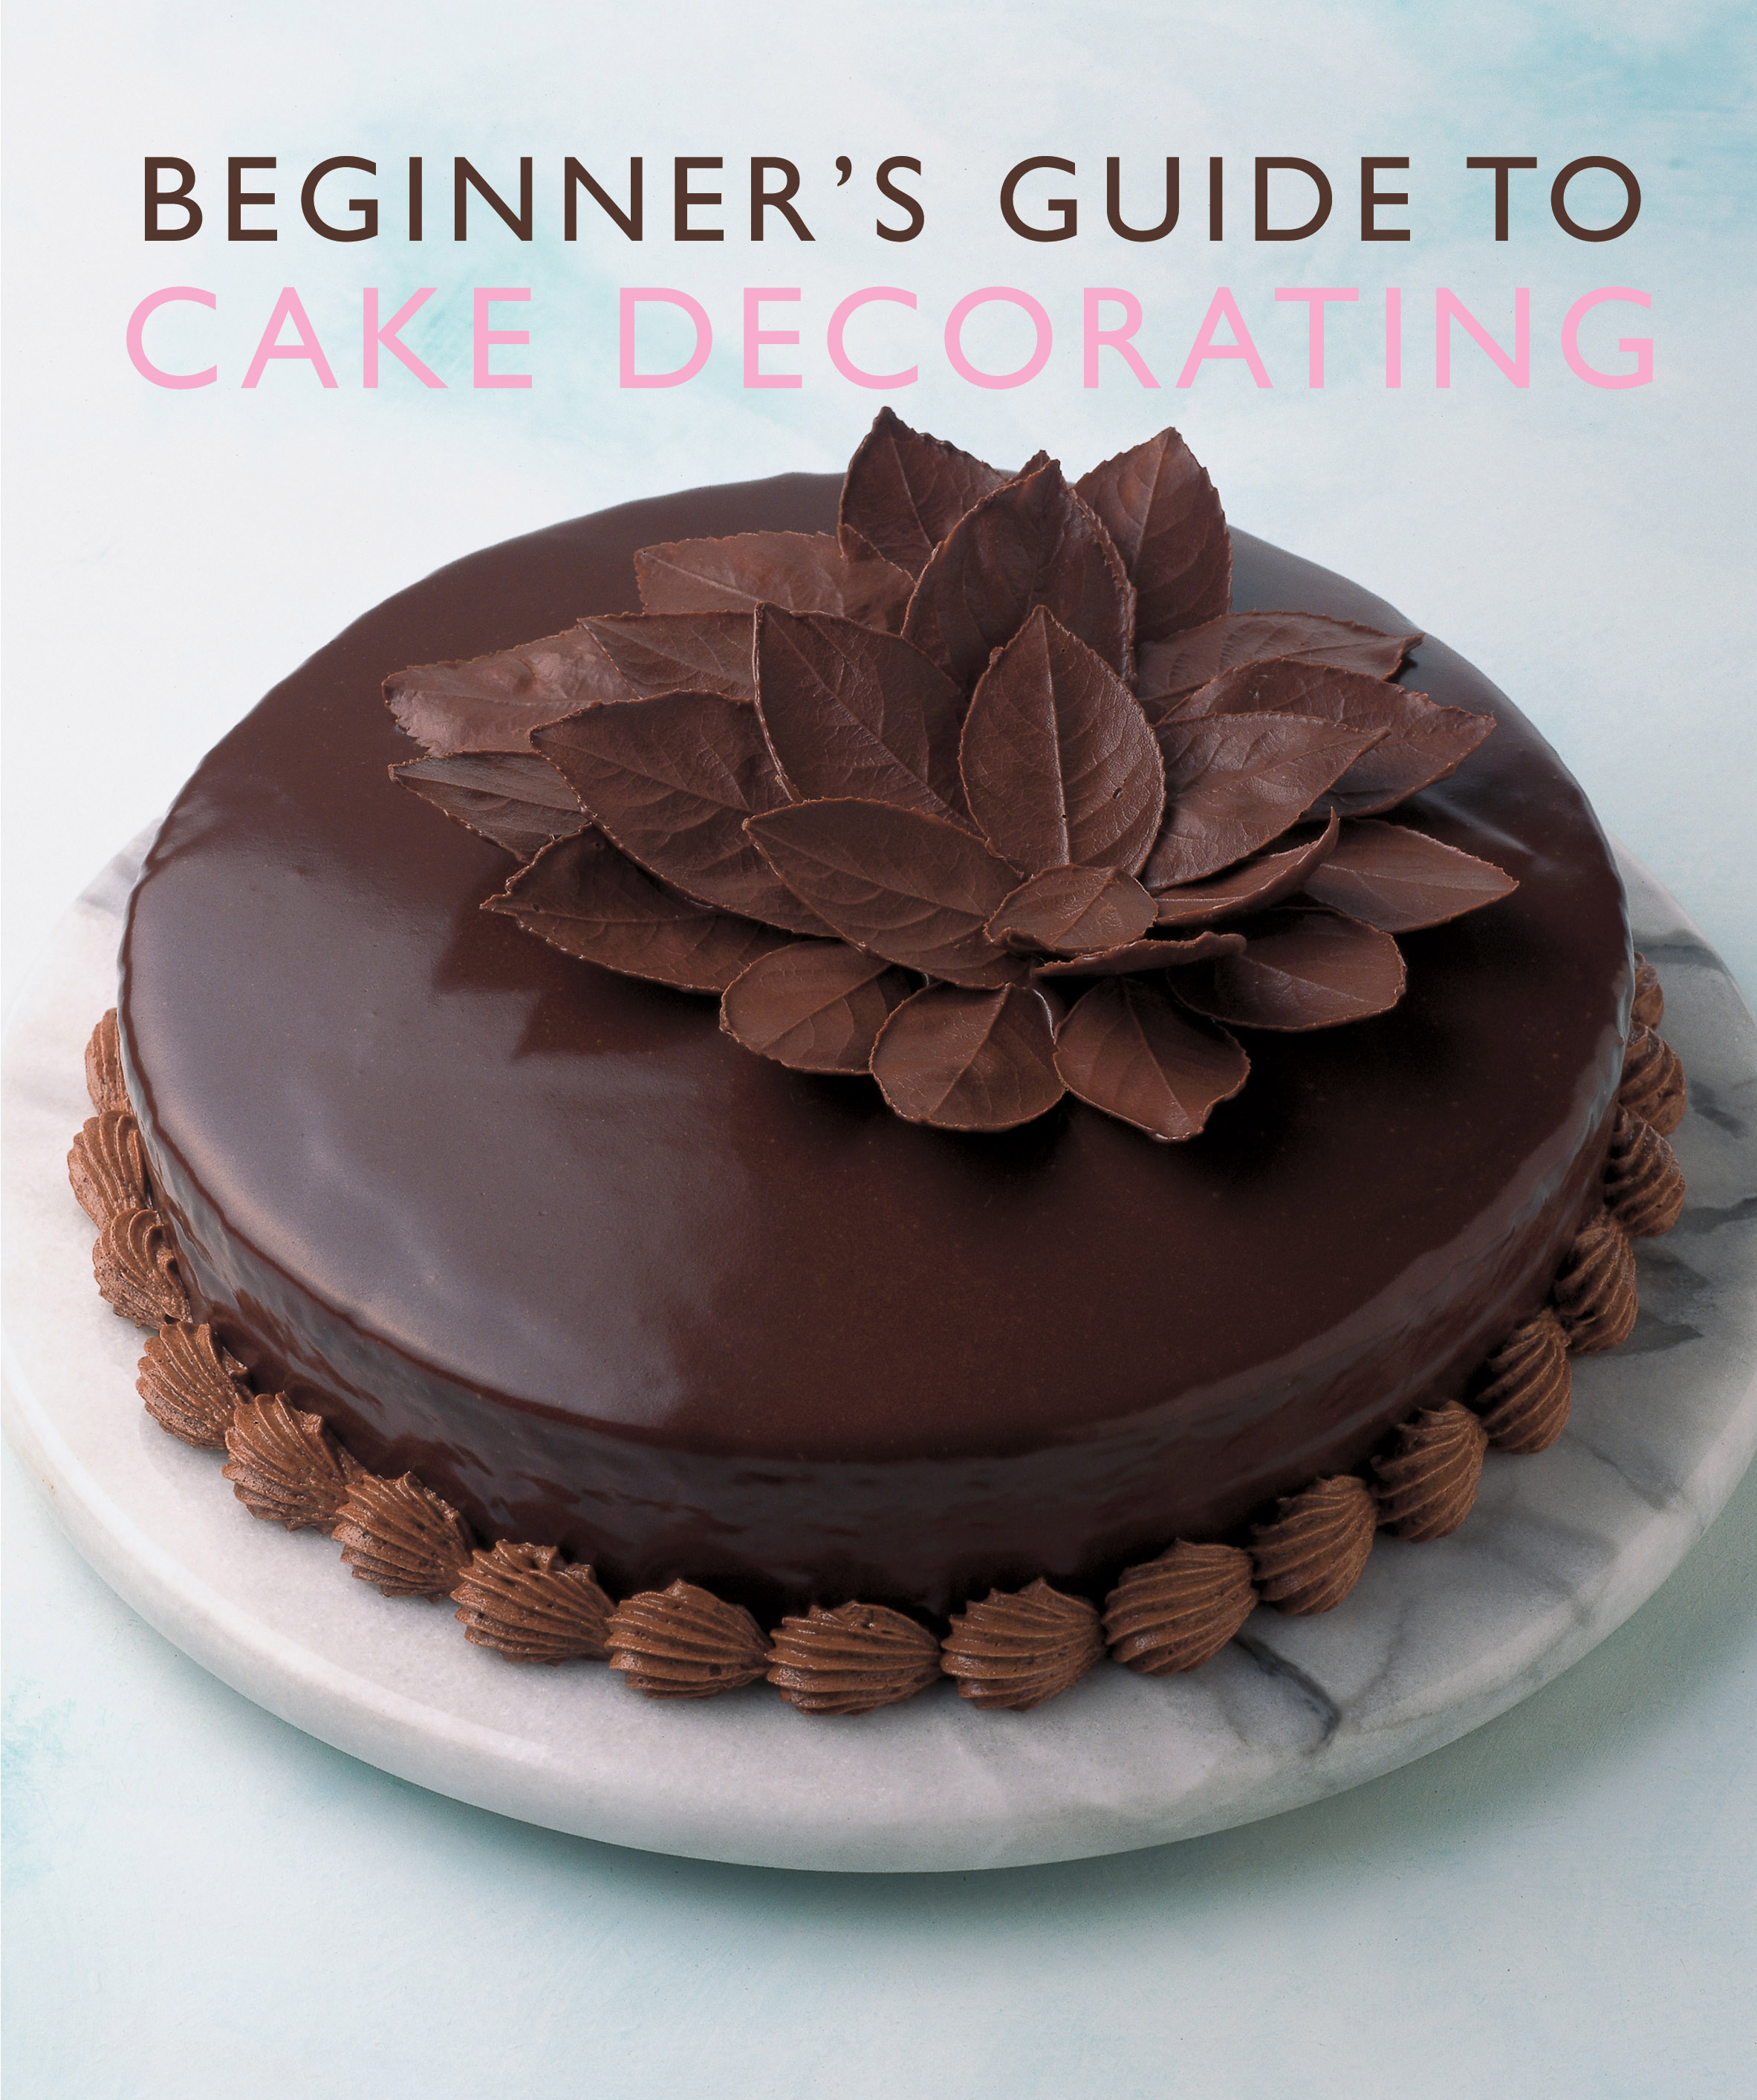 Beginner S Guide To Cake Decorating Murdoch Books Test Kitchen